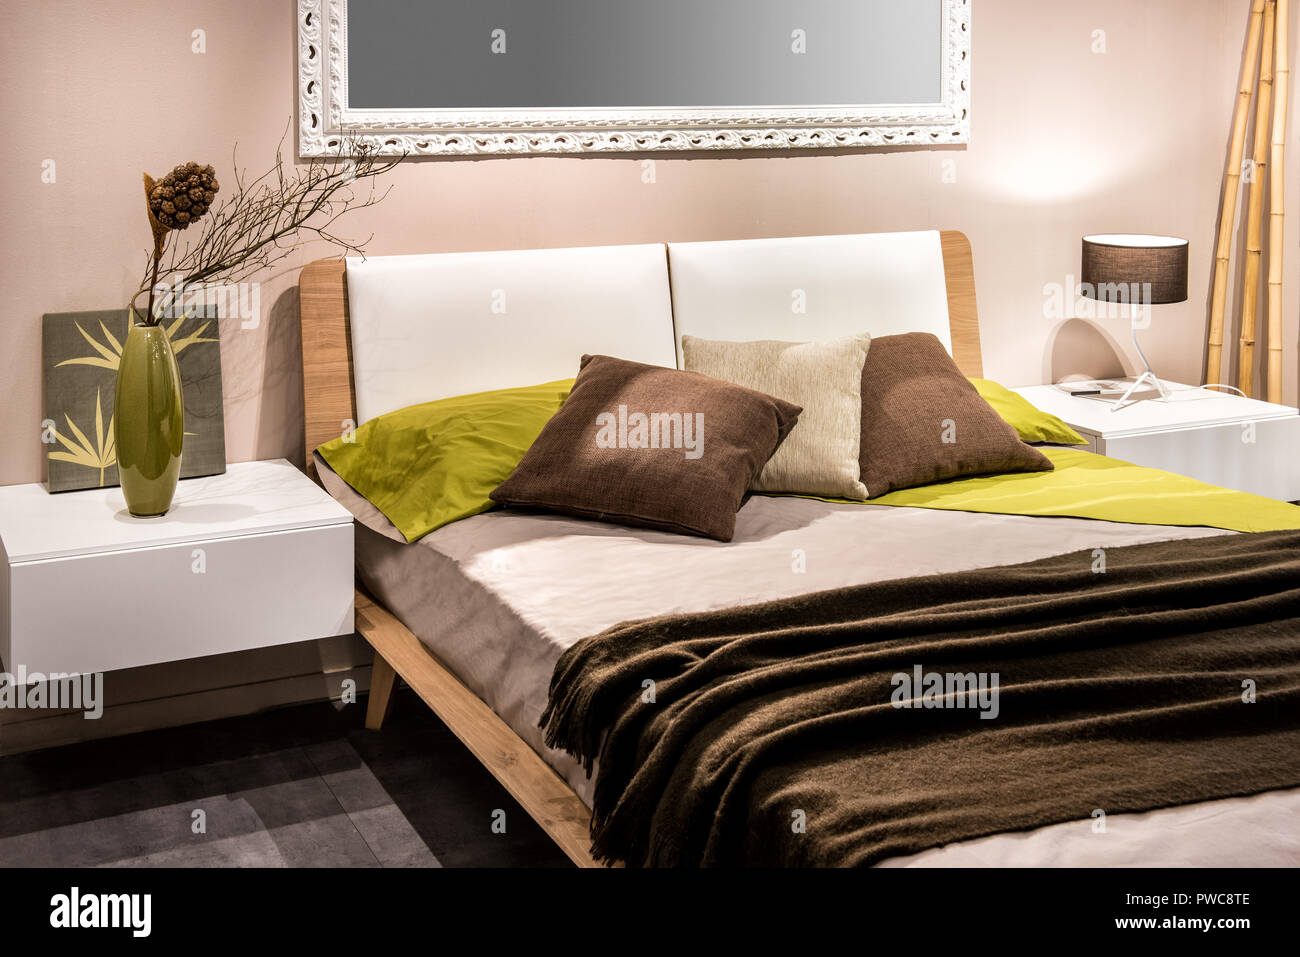 https www alamy com bedroom interior with four pillows on bed and mirror on wall image222161198 html